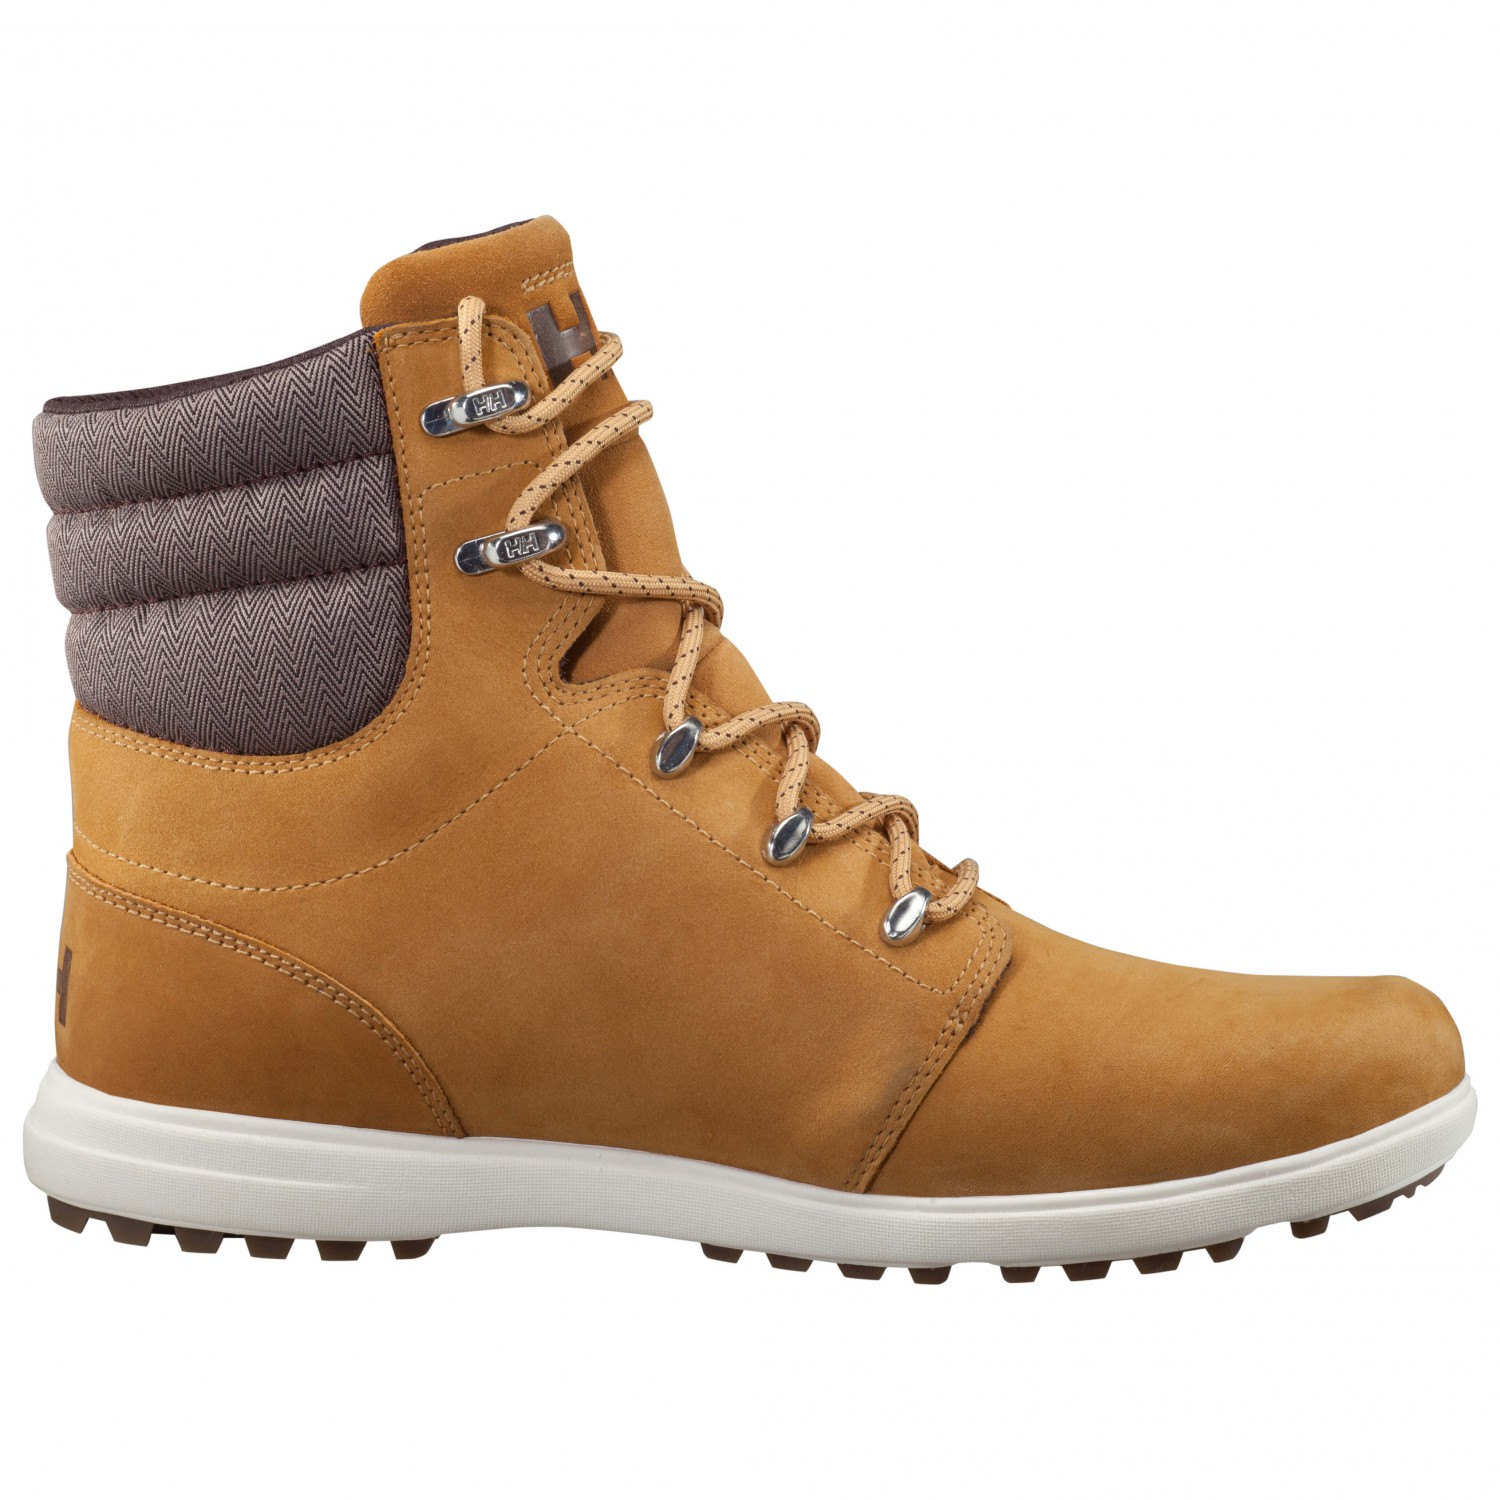 Helly Hansen - AST 2 - Winterschuhe New Wheat / Coffe Bean / Angora / Sperry Gum